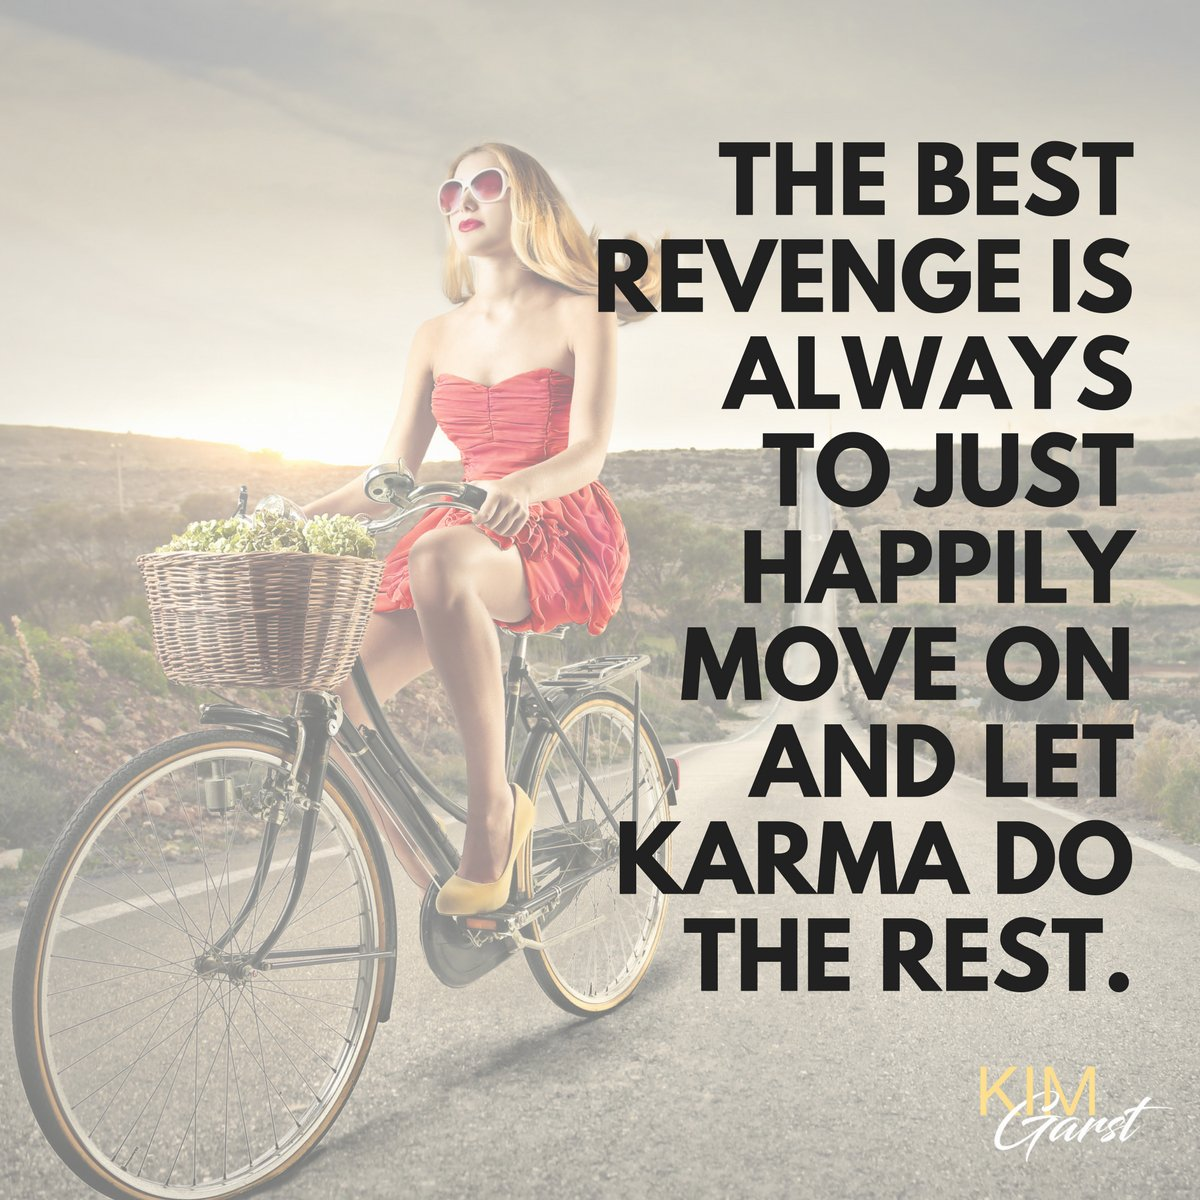 The best revenge is always to just happily move along and let Karma do the rest.